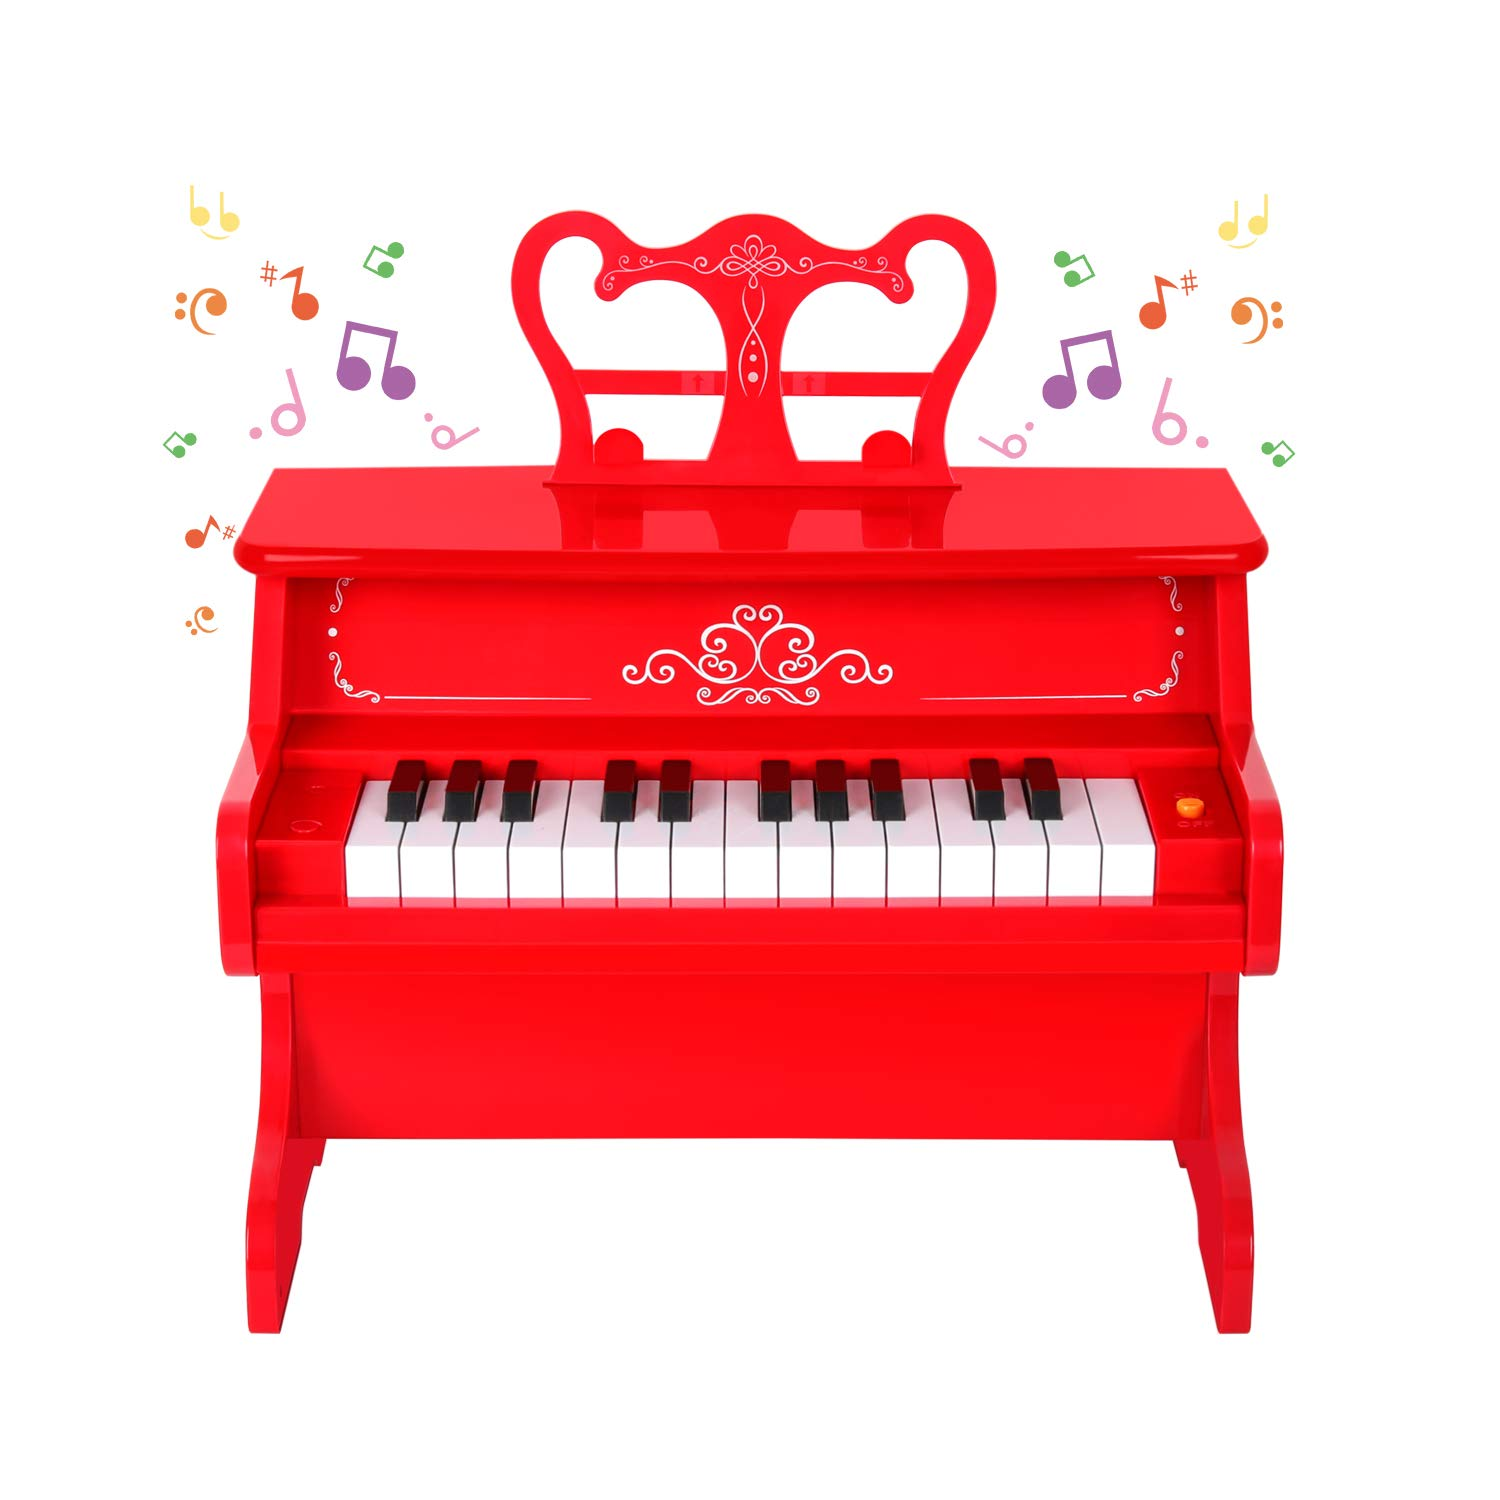 M SANMERSEN Kids Piano, 25 Full Size Keys Piano Keyboard Kids Educational Learn-to-Play Mini Piano Musical Instrument Keyboard Toy - Red